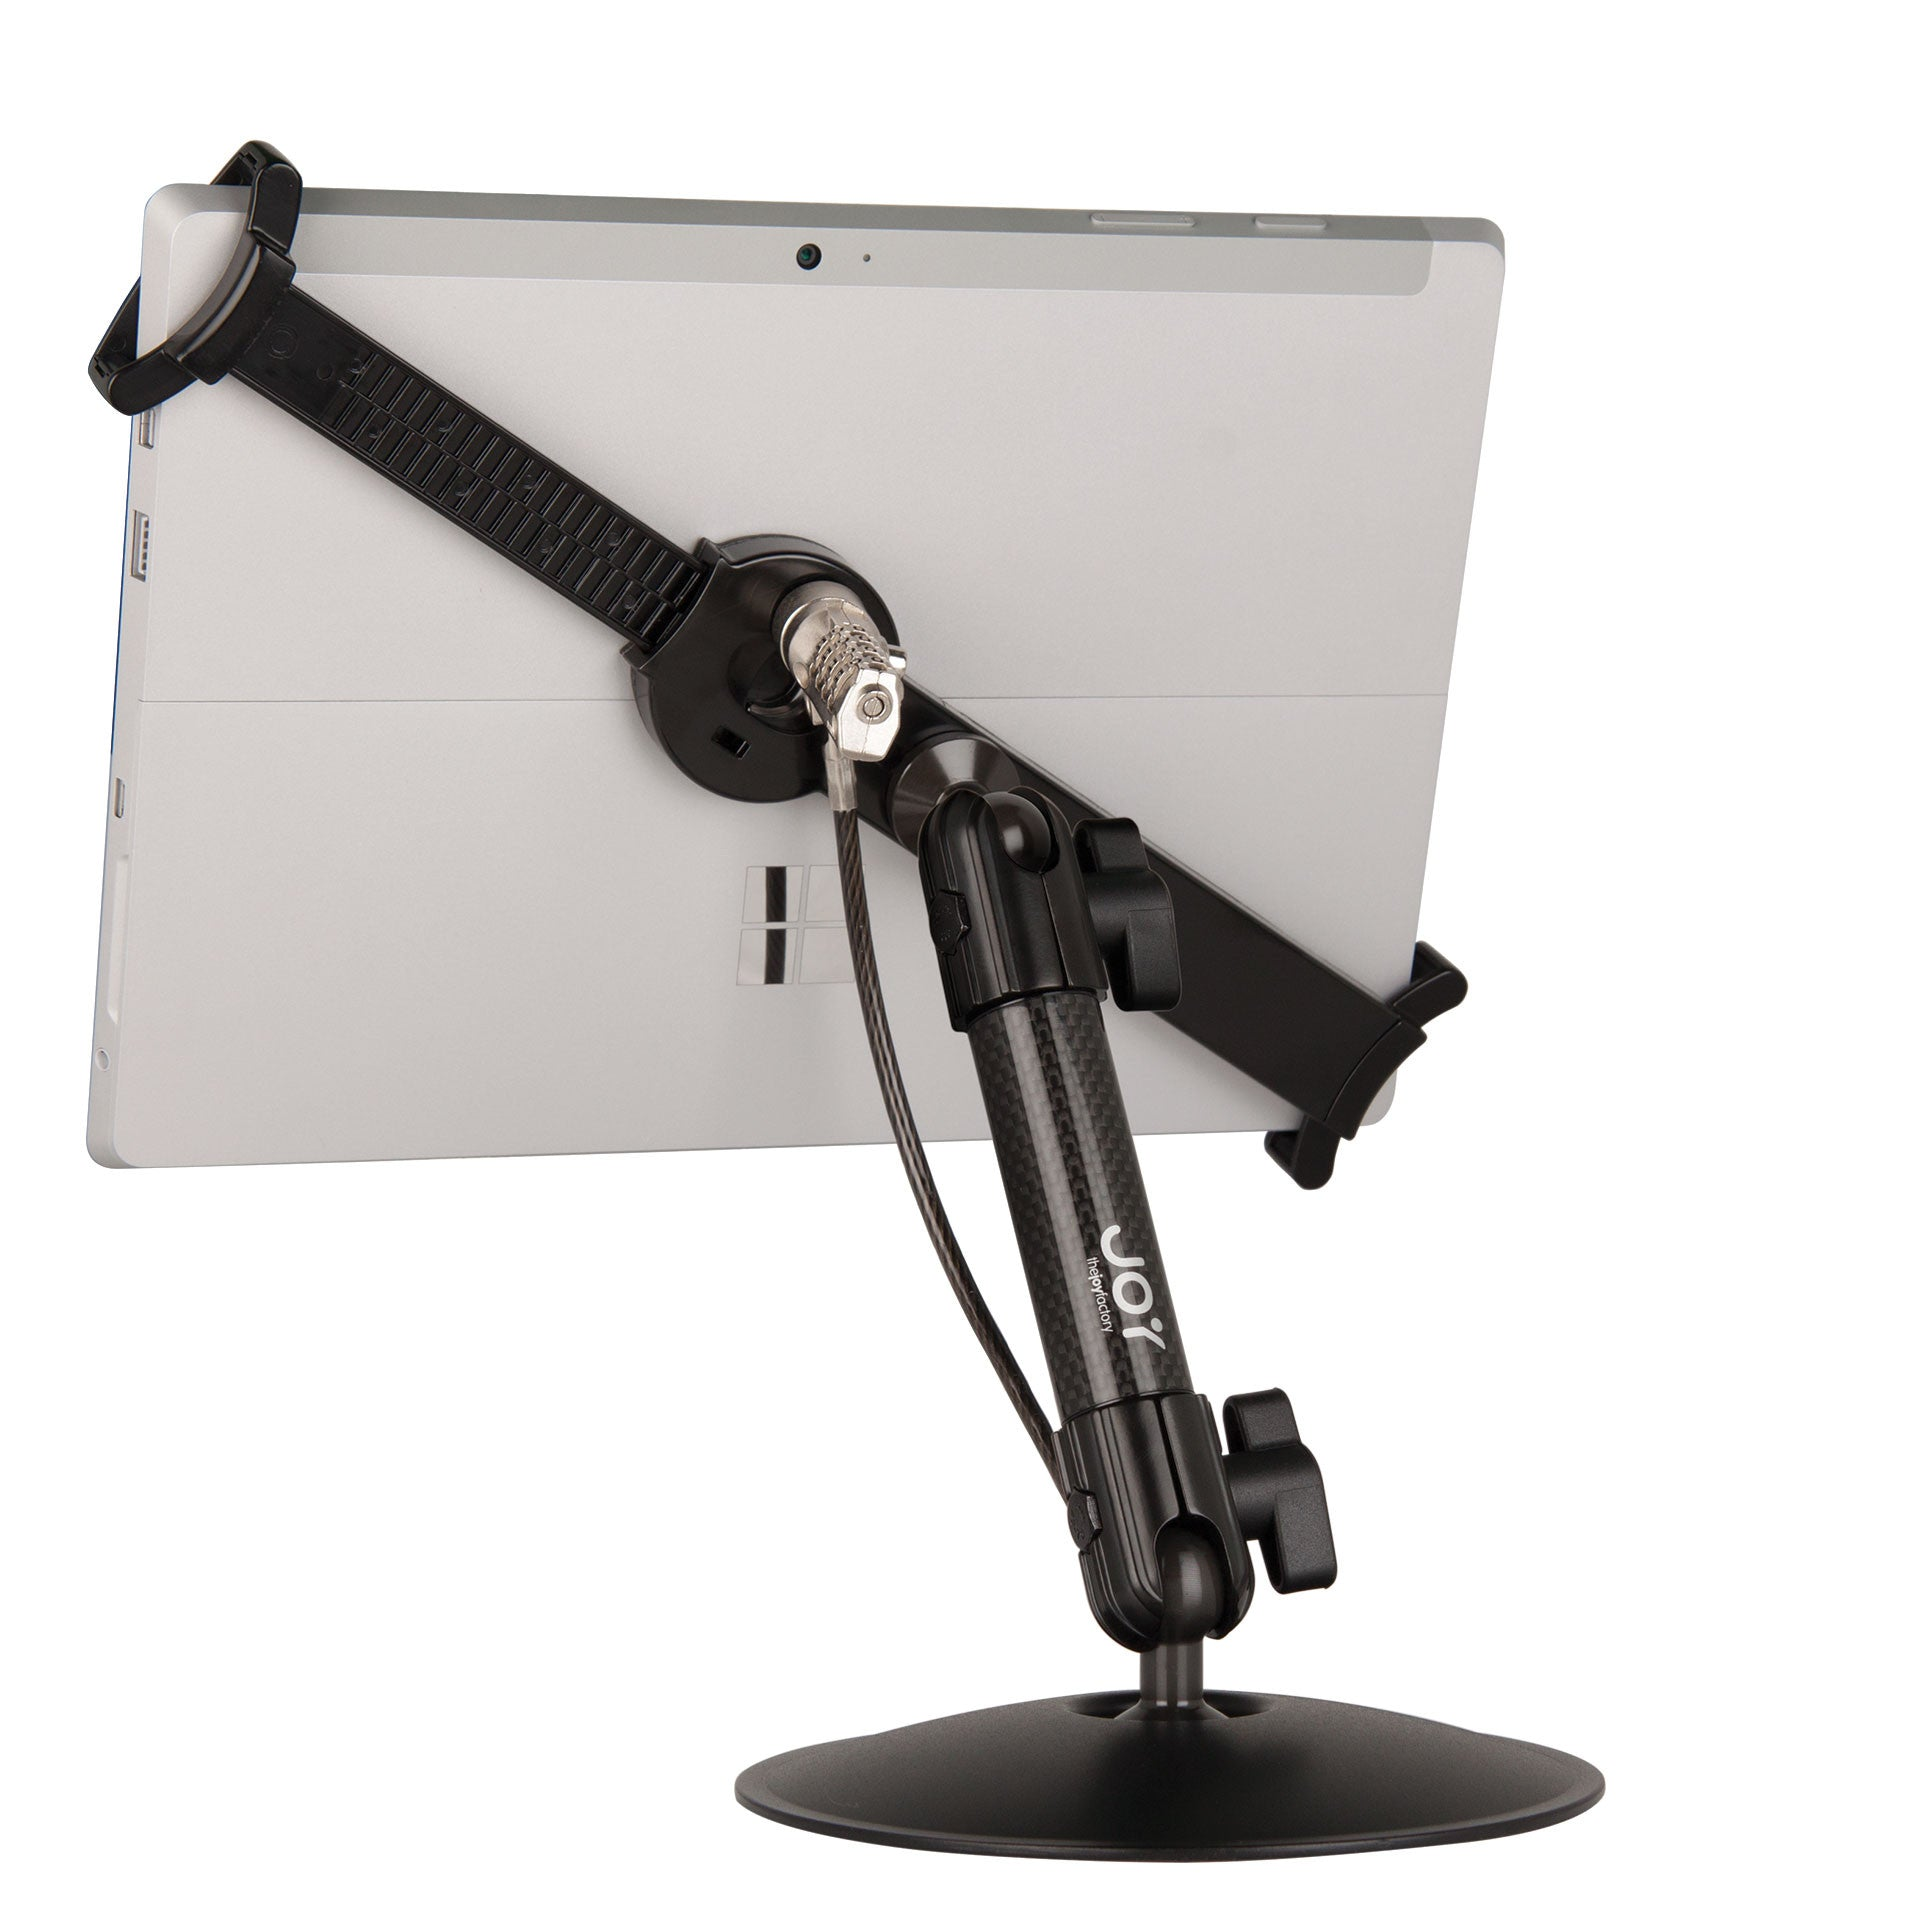 Universal Tablet Stand for Desk Top for 7 101 Tablets